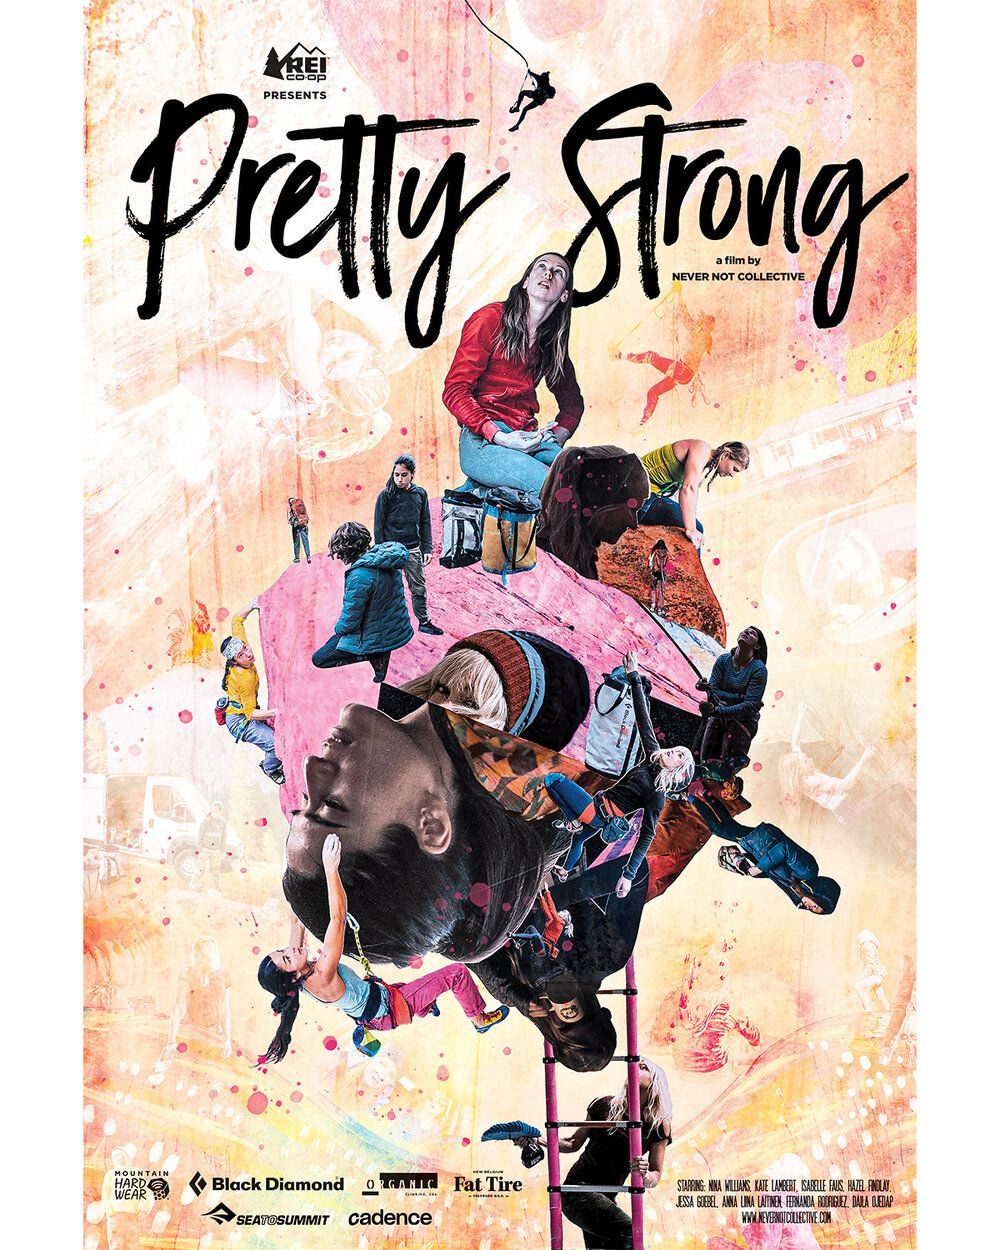 Voir Film Pretty Strong - Documentaire (2020) streaming VF gratuit complet